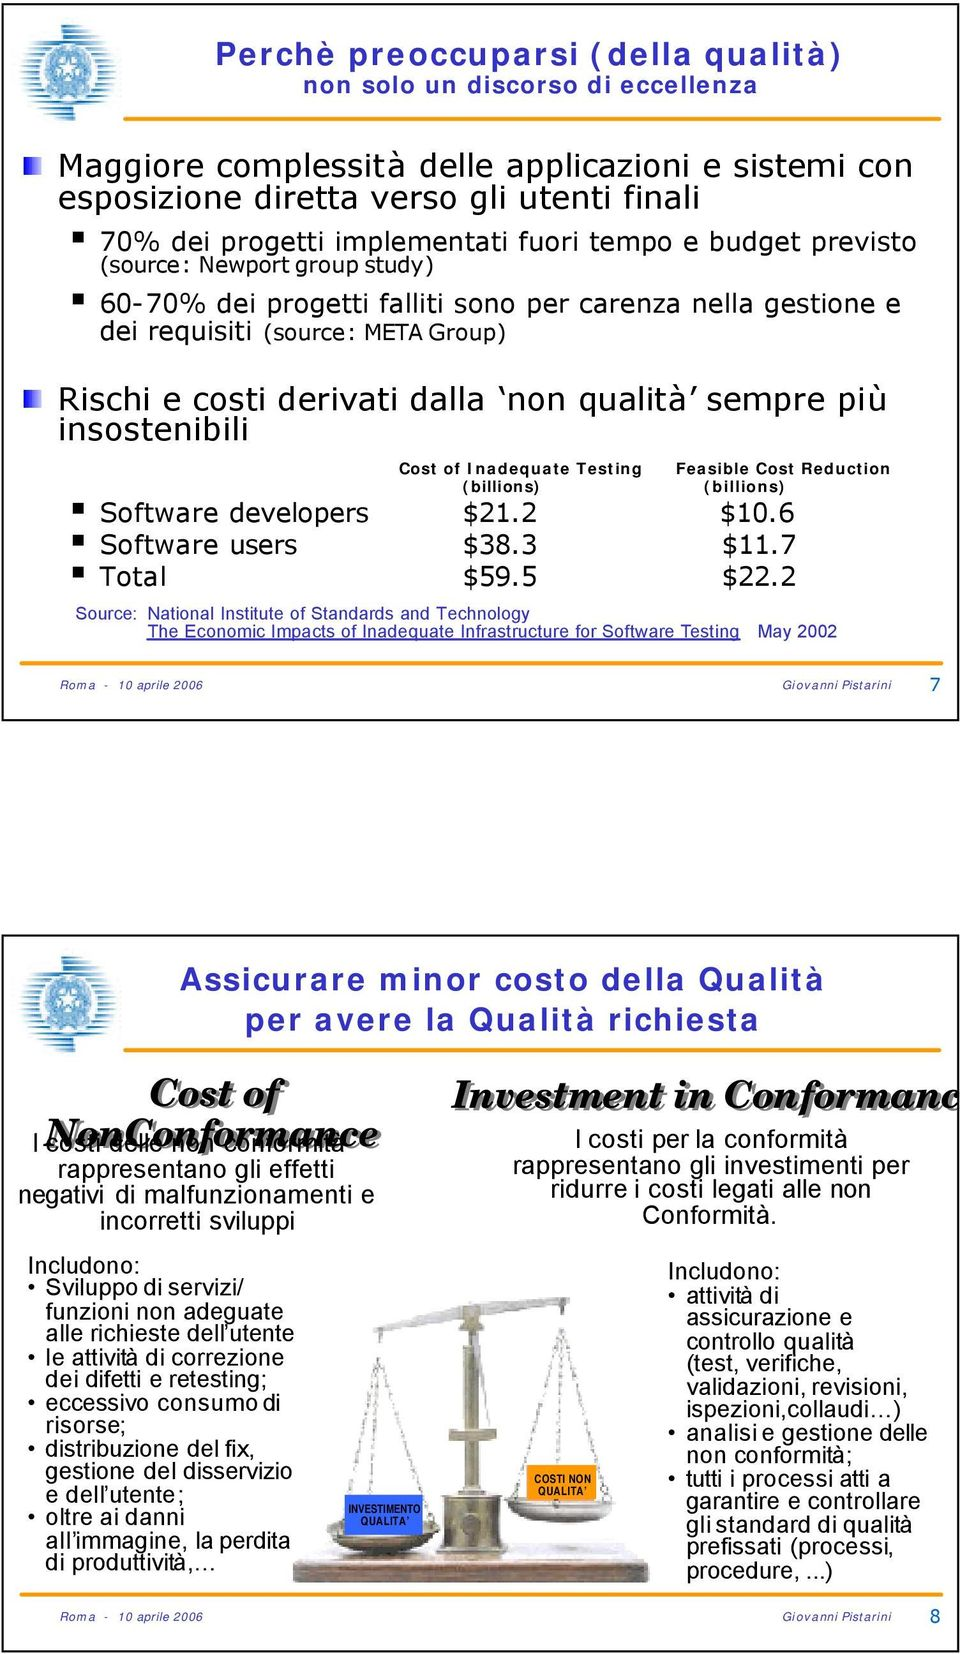 sempre più insostenibili Cost of Inadequate Testing (billions) Feasible Cost Reduction (billions) Software developers $21.2 $10.6 Software users $38.3 $11.7 Total $59.5 $22.